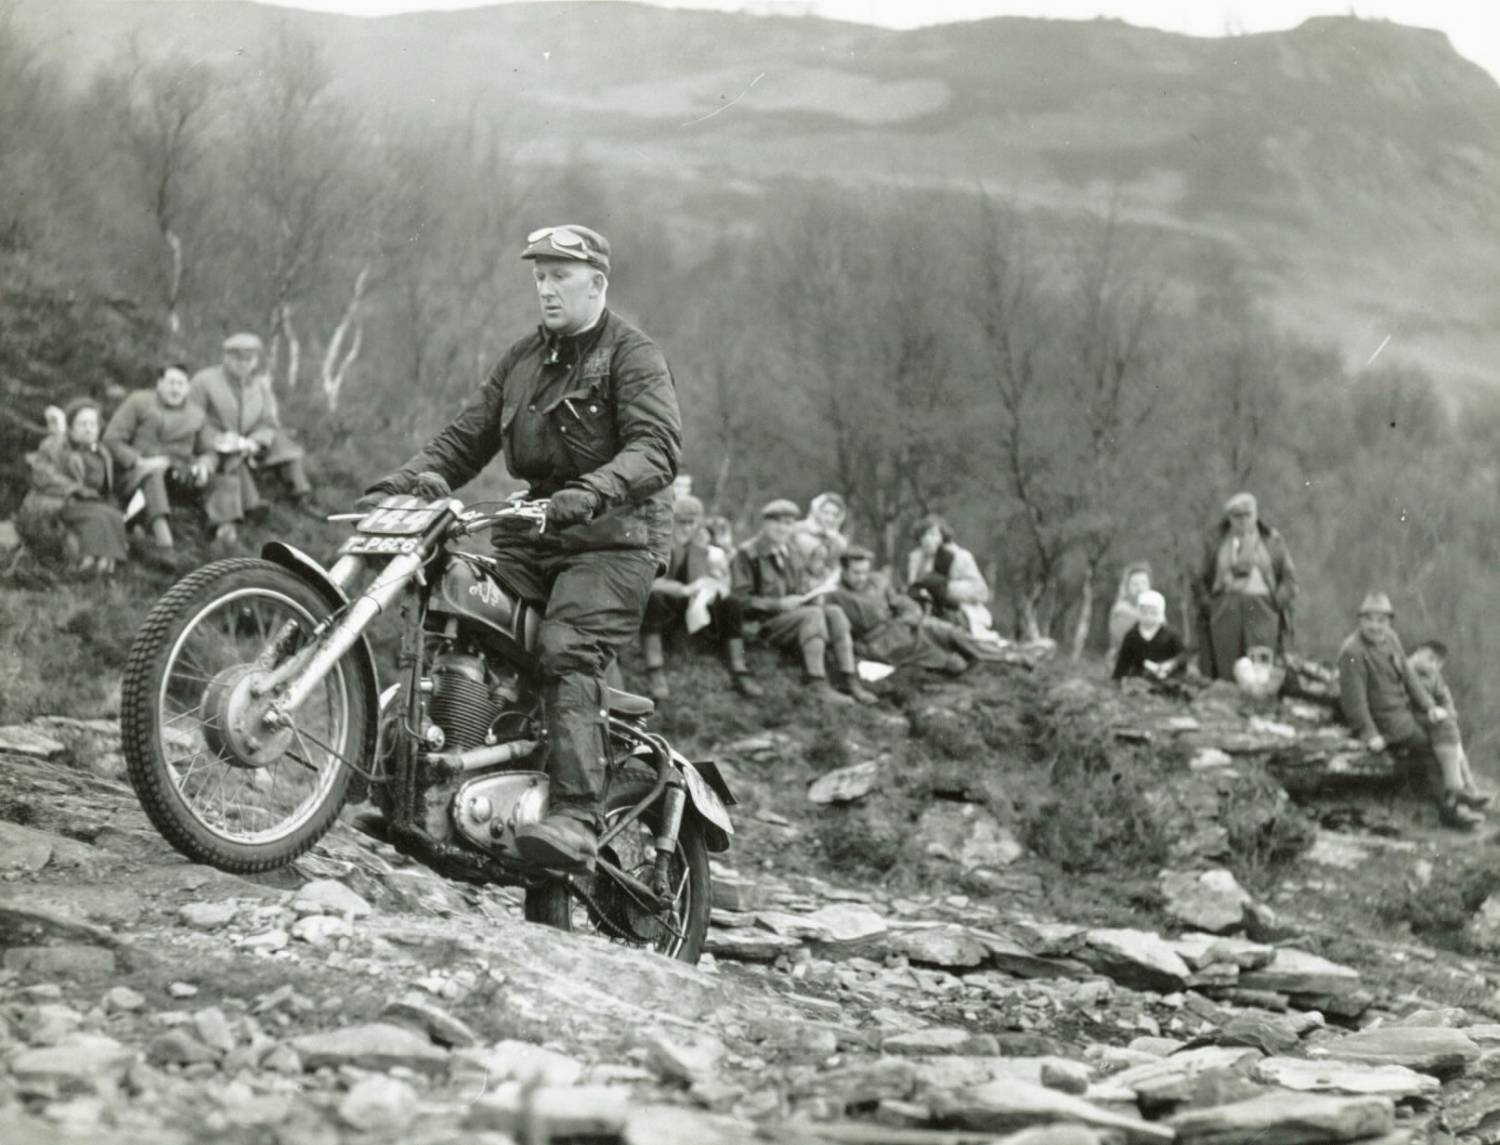 Vintage Trials Riding